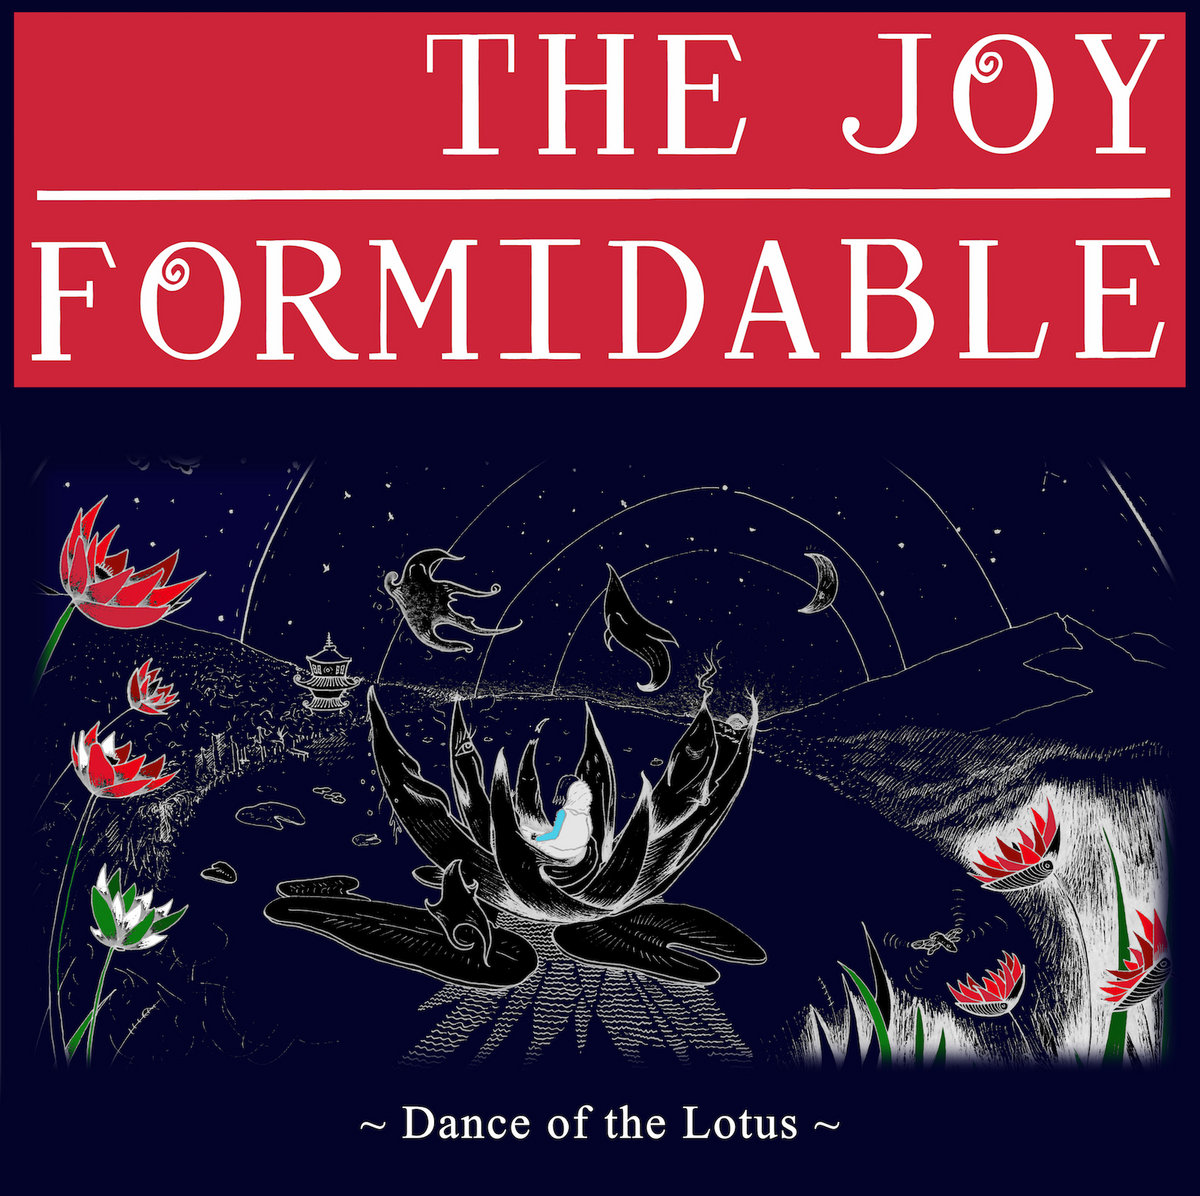 Dance of the Lotus | The Joy Formidable